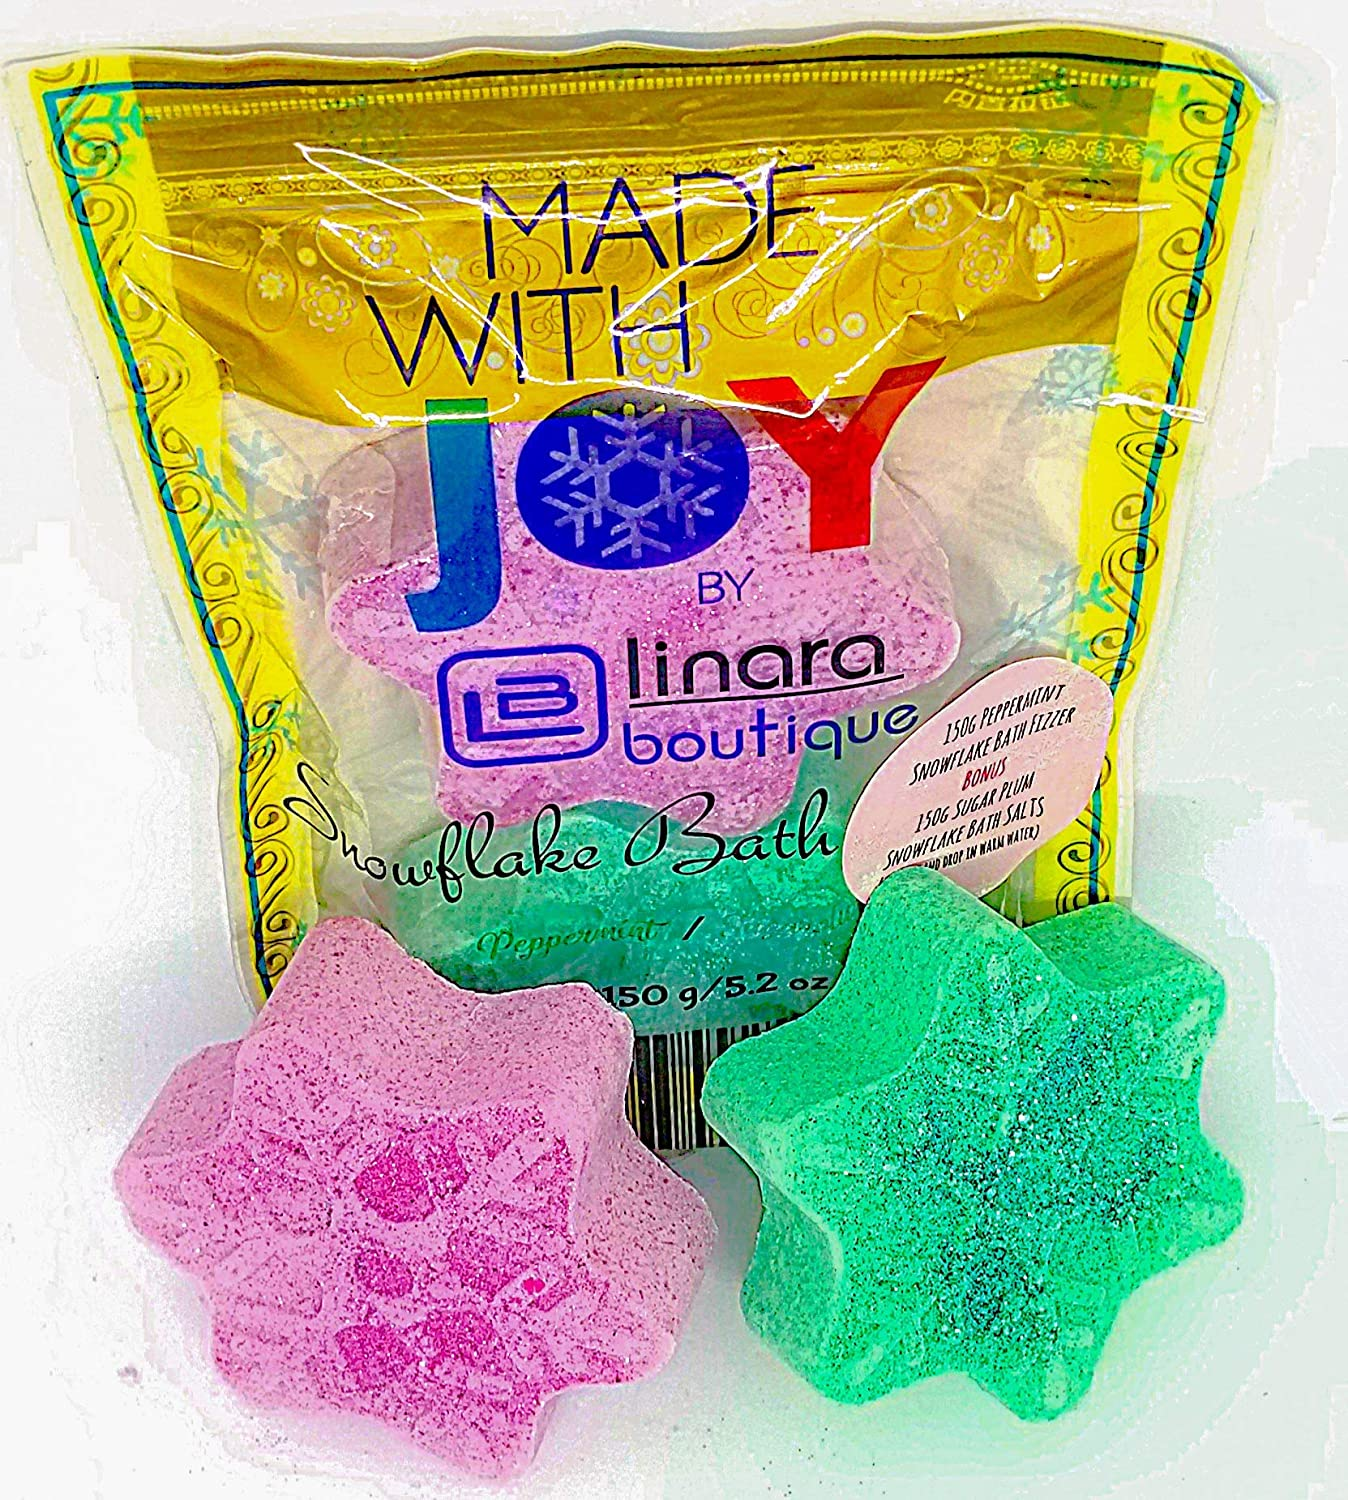 Beautifully Packaged Snowflake Bath Bomb and BONUS Bath Salts Gift Set 150g Peppermint Bath Fizzer & 150g Sugar Plum Bath Salt GREAT STOCKING STUFFER Linara Boutique